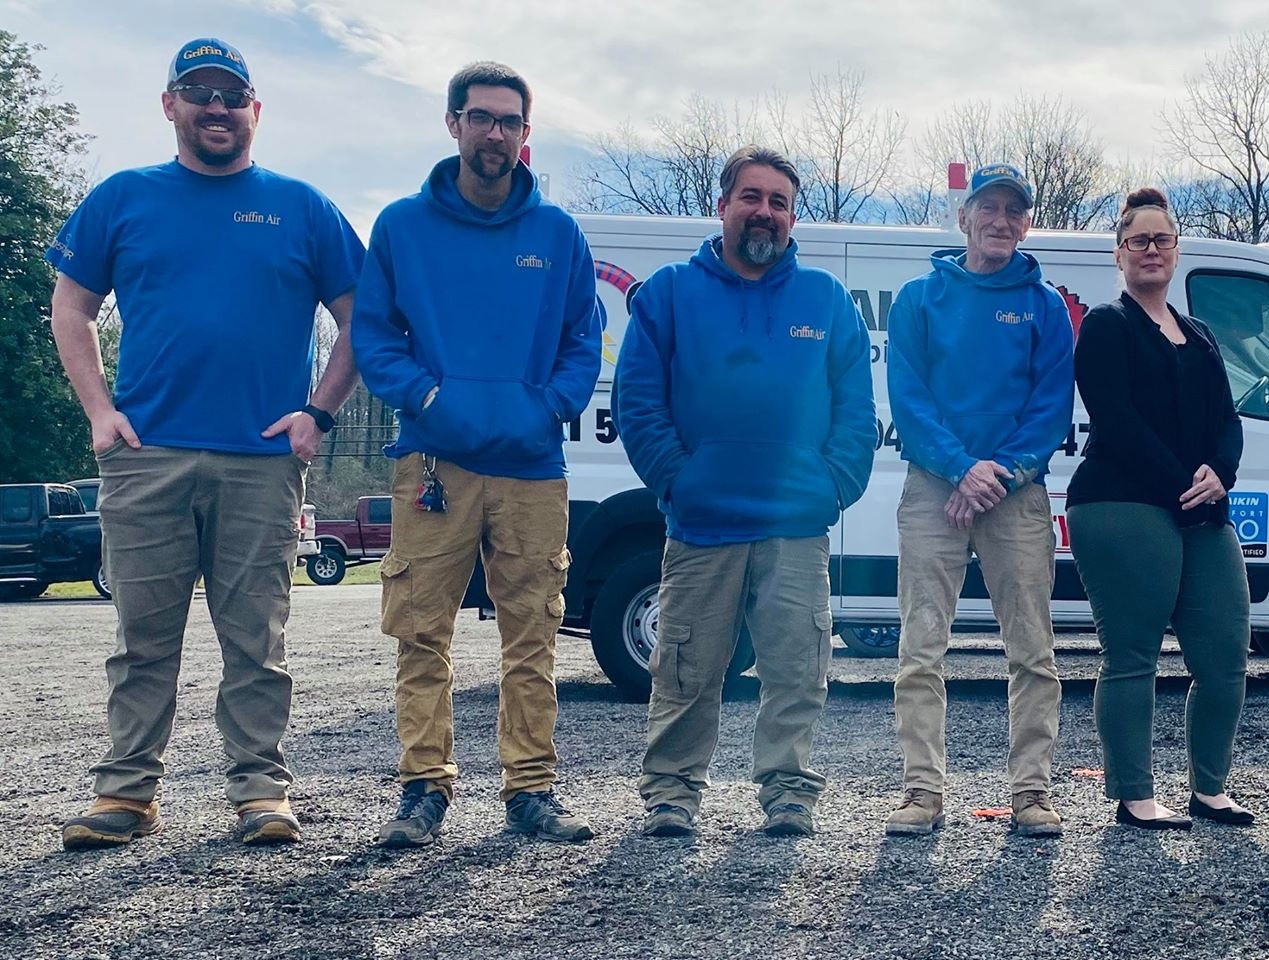 Griffin Air HVAC and Plumbing team